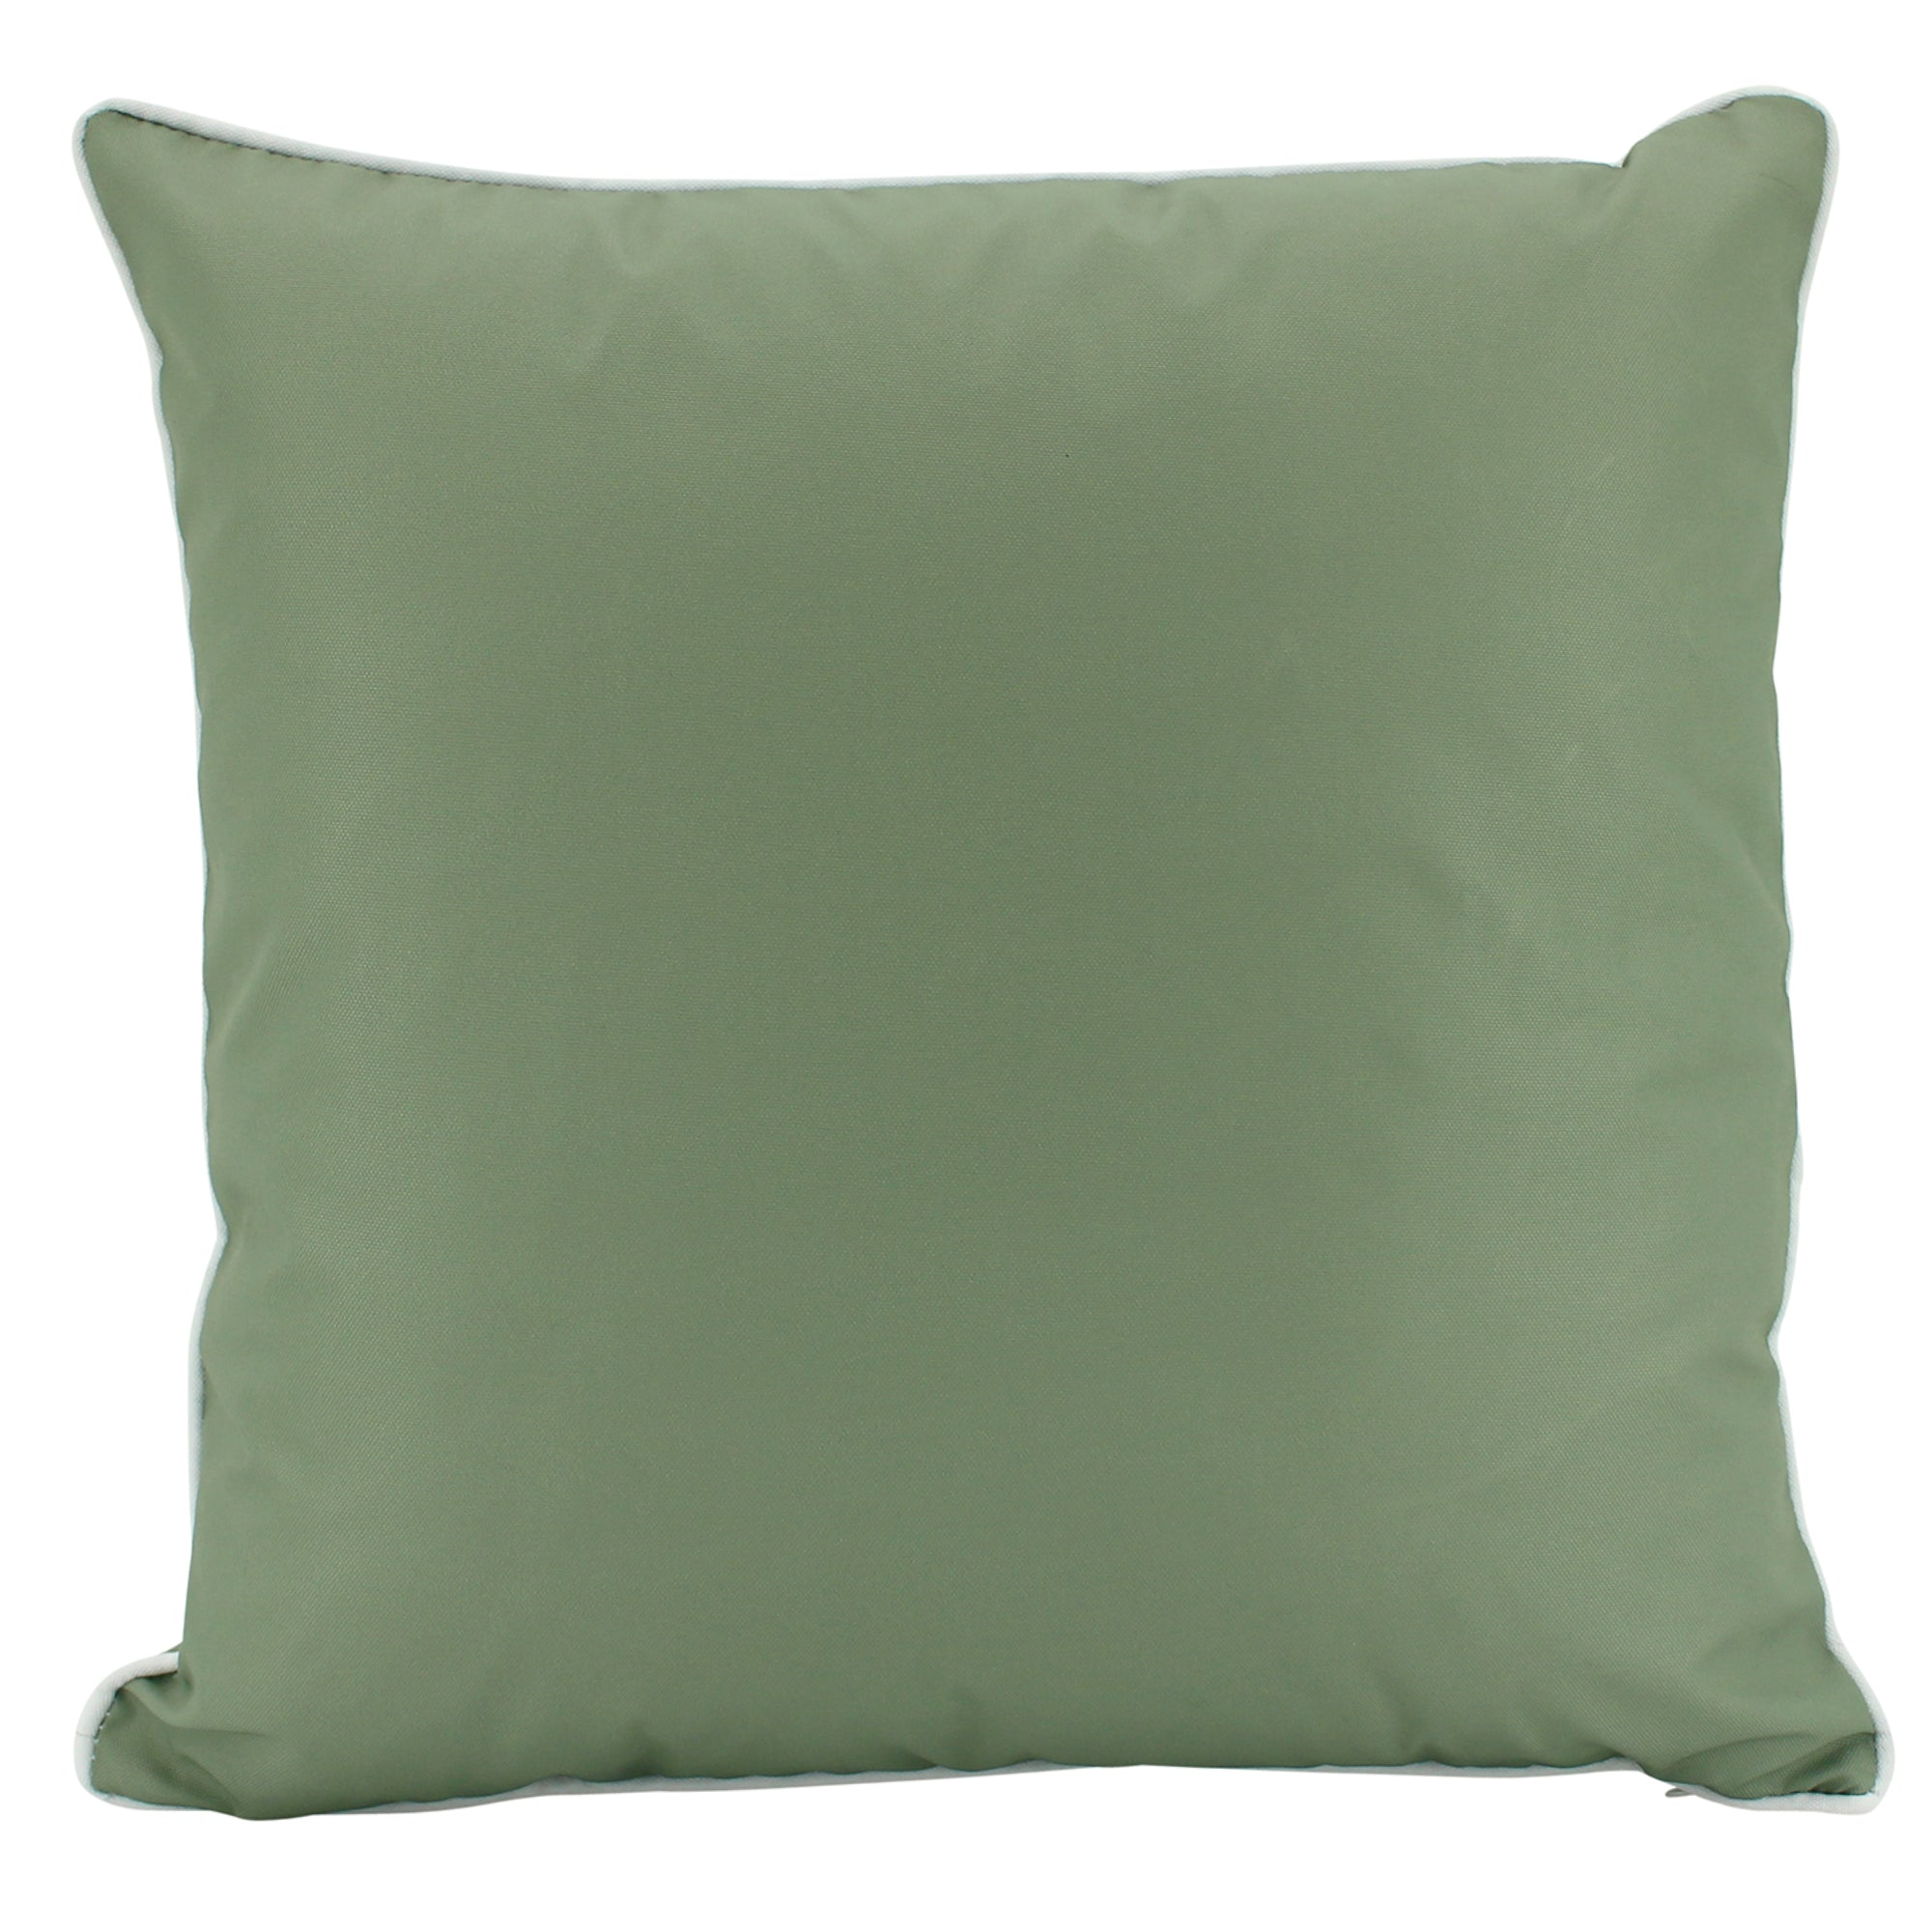 Cushion Outdoor Olive 50cm x 50cm